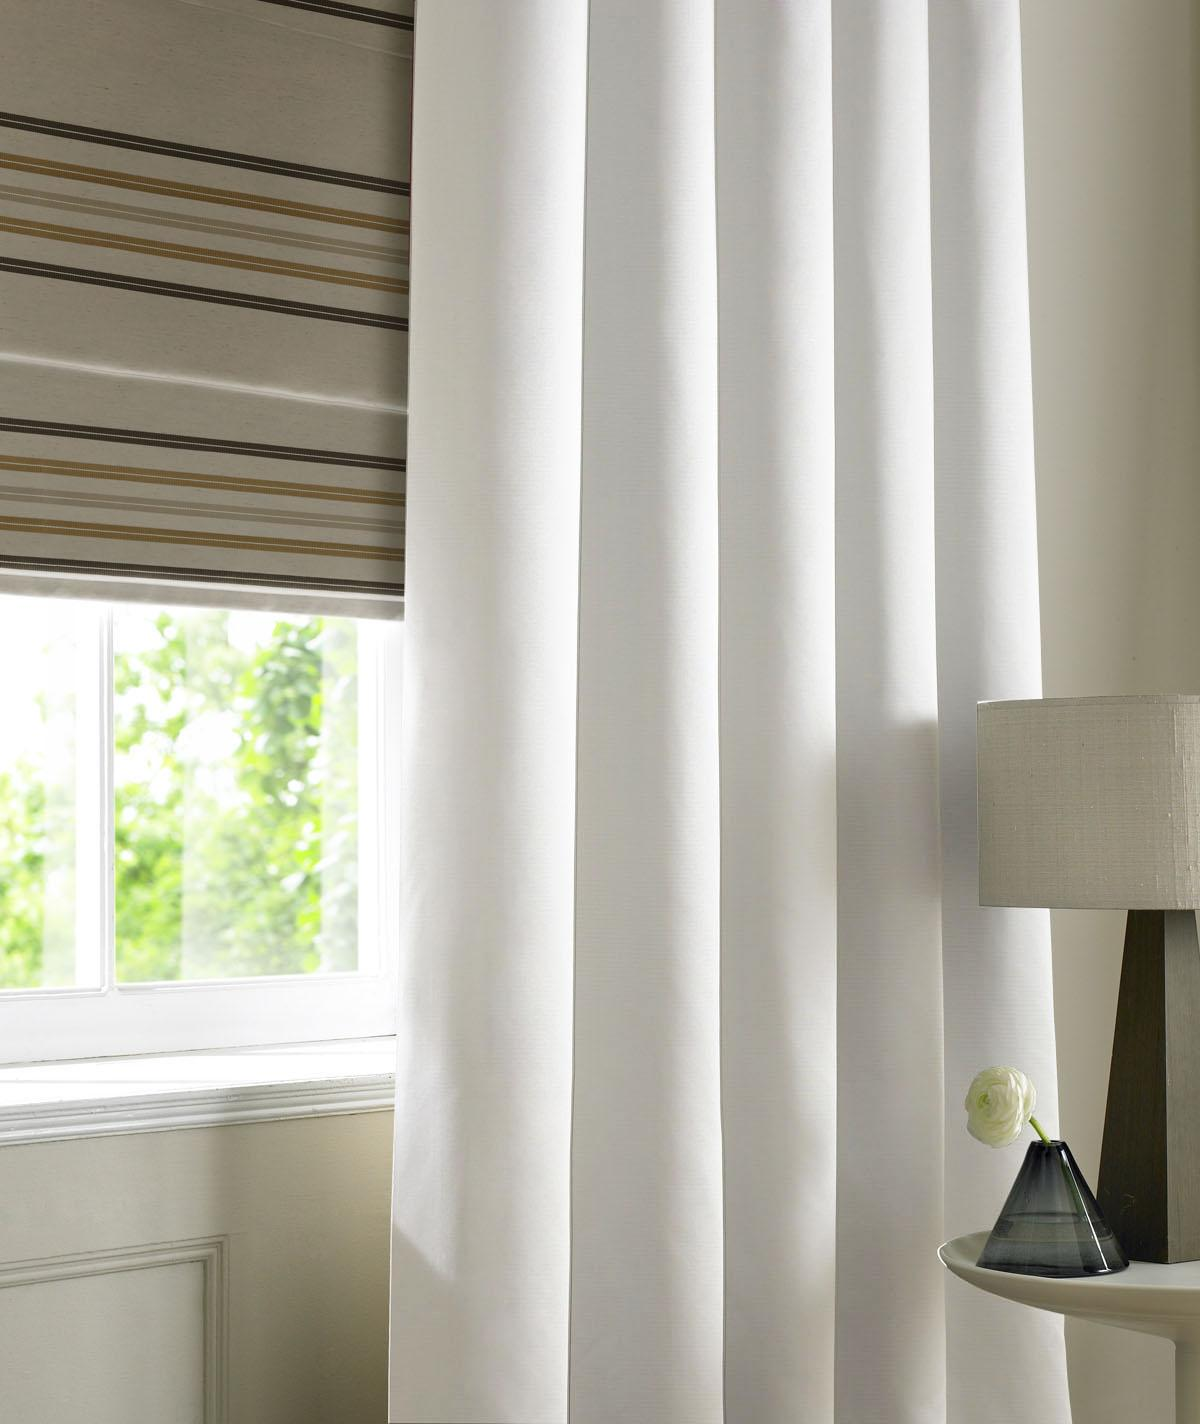 Buy cheap plain curtains compare curtains blinds for Best place to buy fabric for curtains